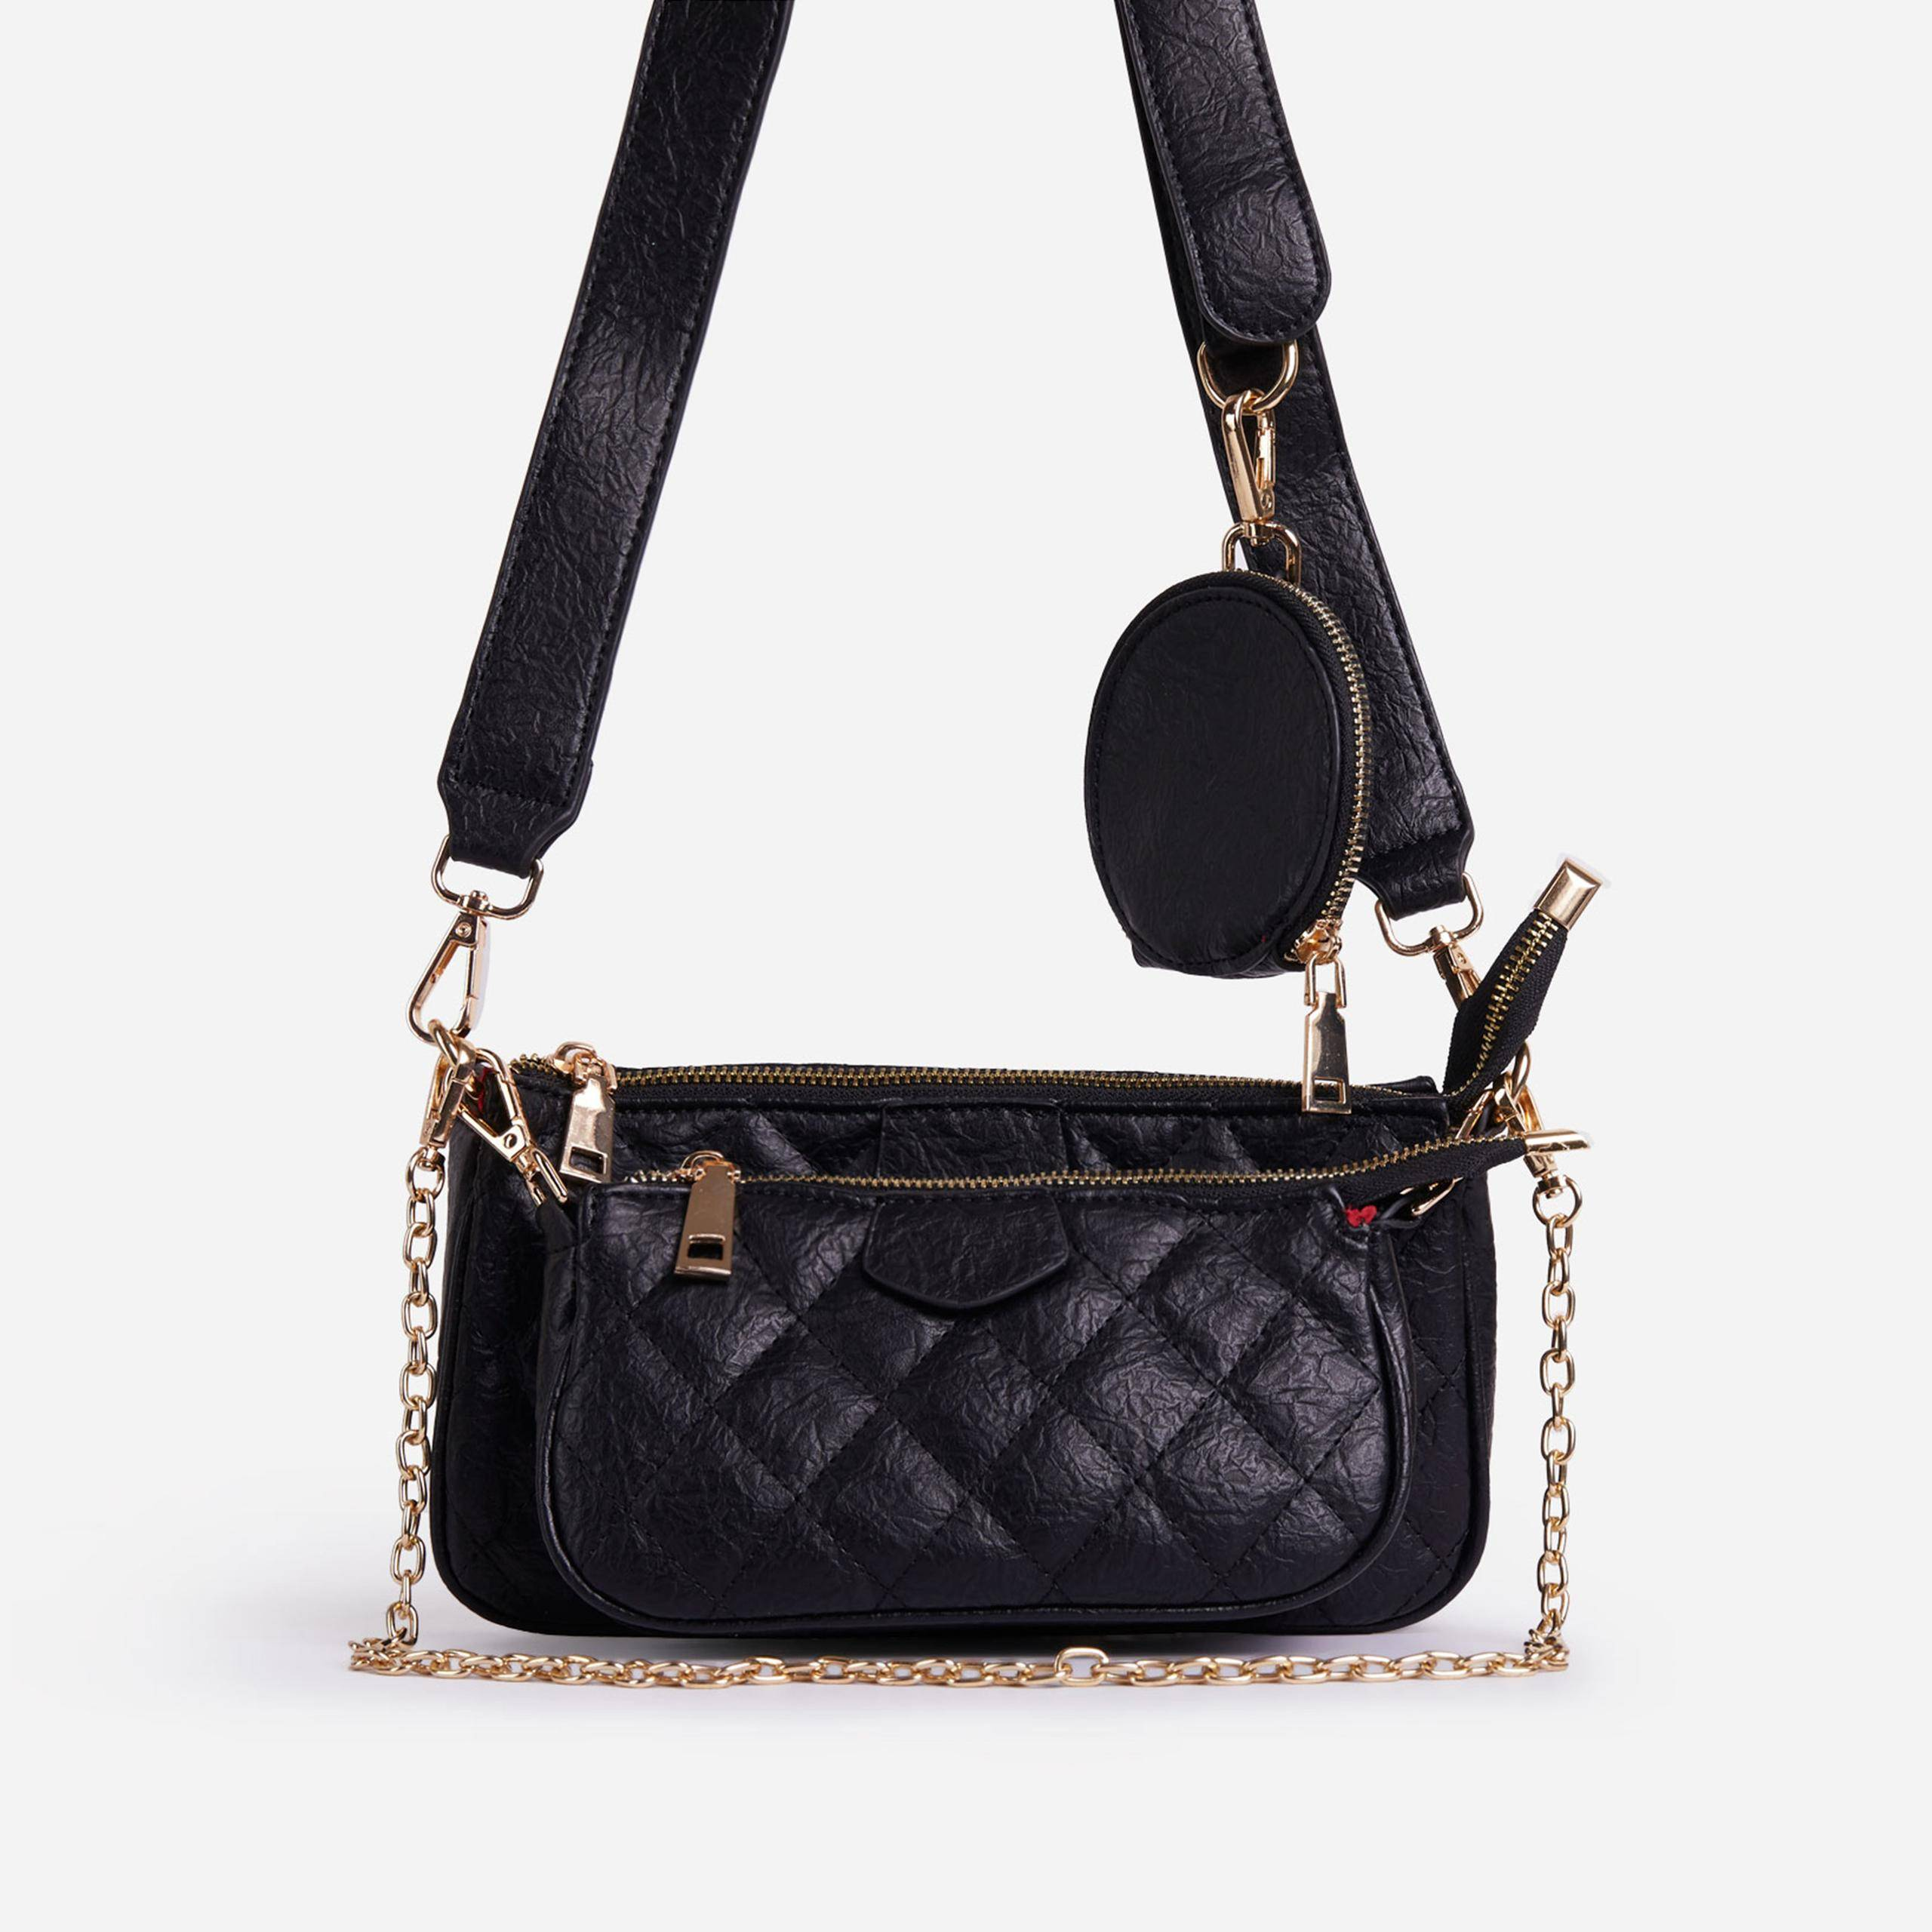 EGO Tati Quilted Purse And Chain Detail Cross Body Bag In Black Faux Leather,, Black  - female - Size: One Size